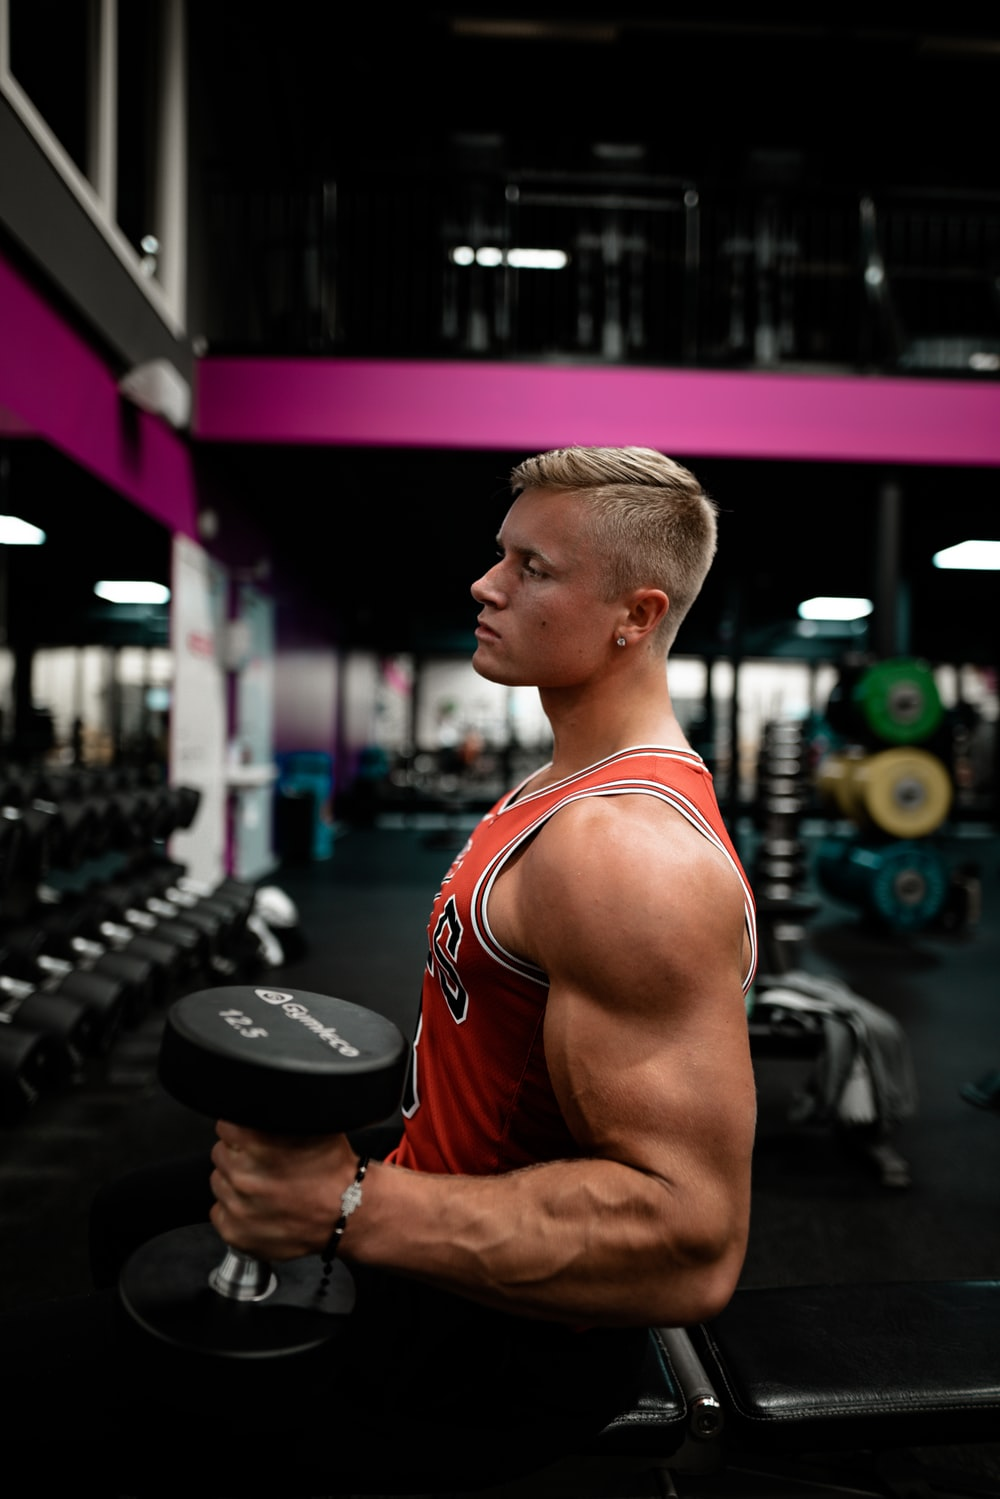 man standing while holding dumbbell inside gym